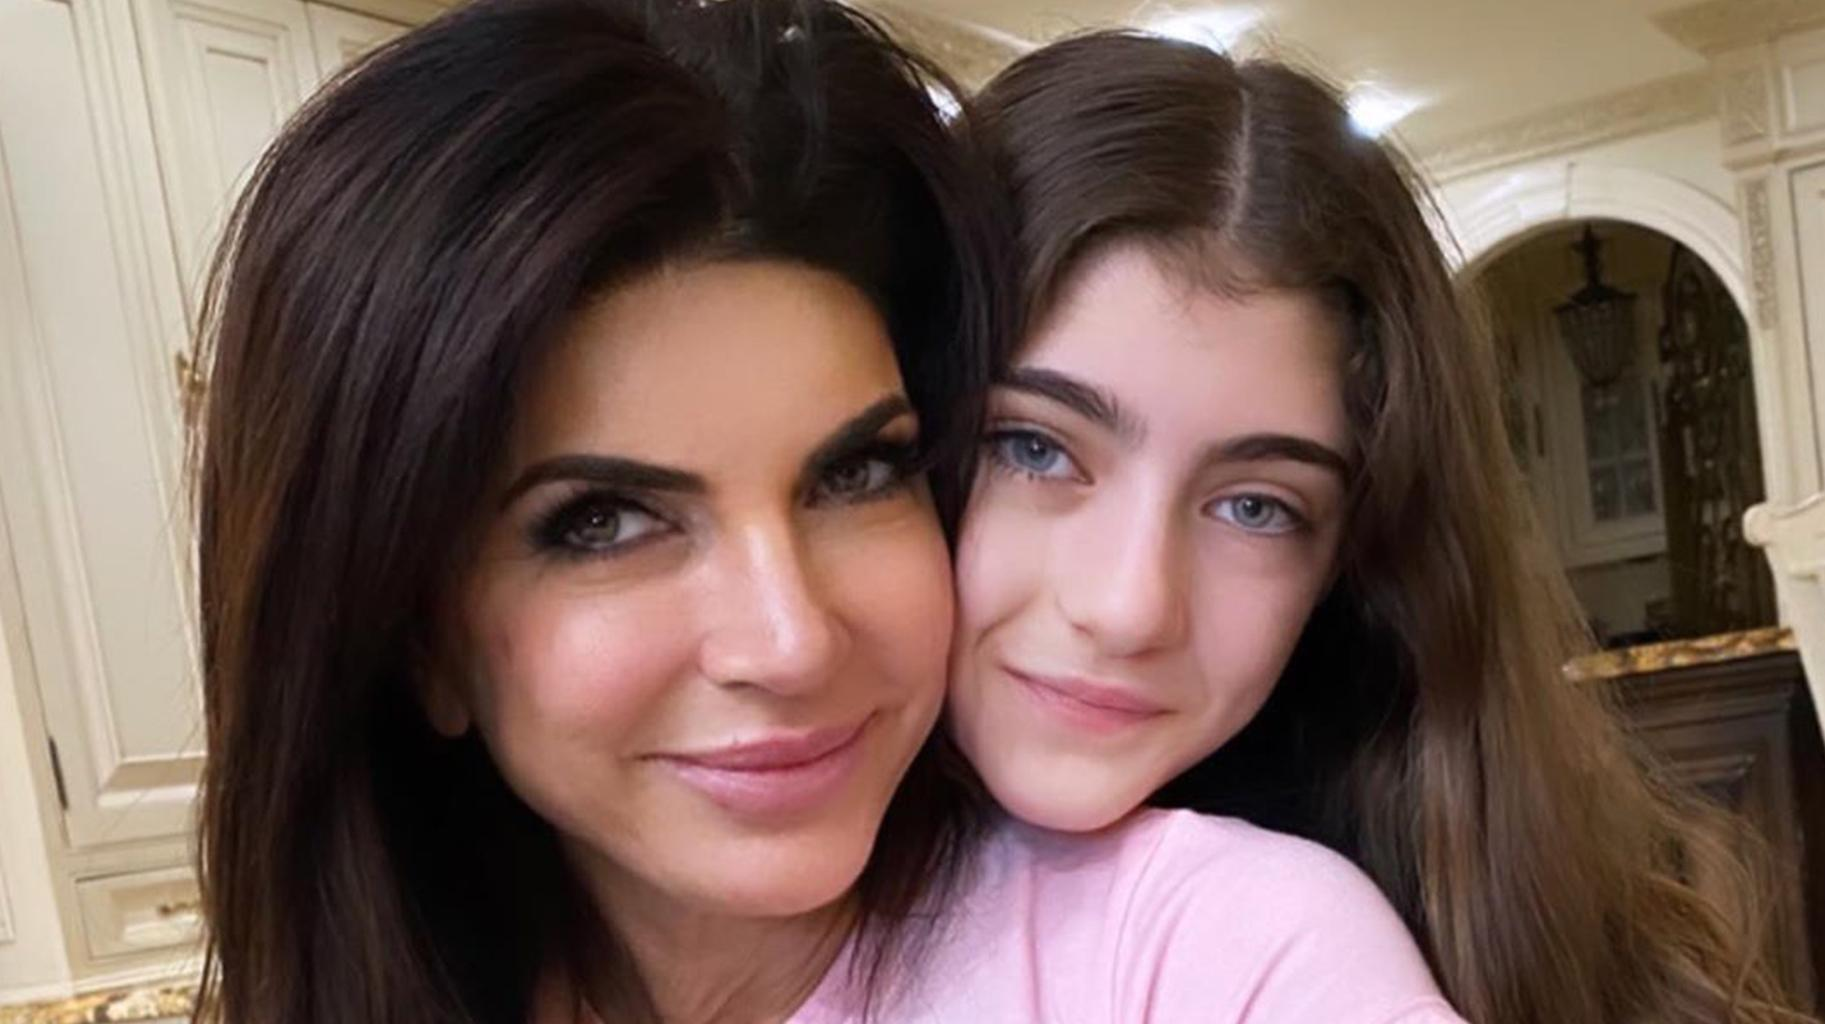 Teresa Giudice's Youngest Daughter Graduates From Grade 5 And She Already Looks So Grown Up - See The Sweet Post!